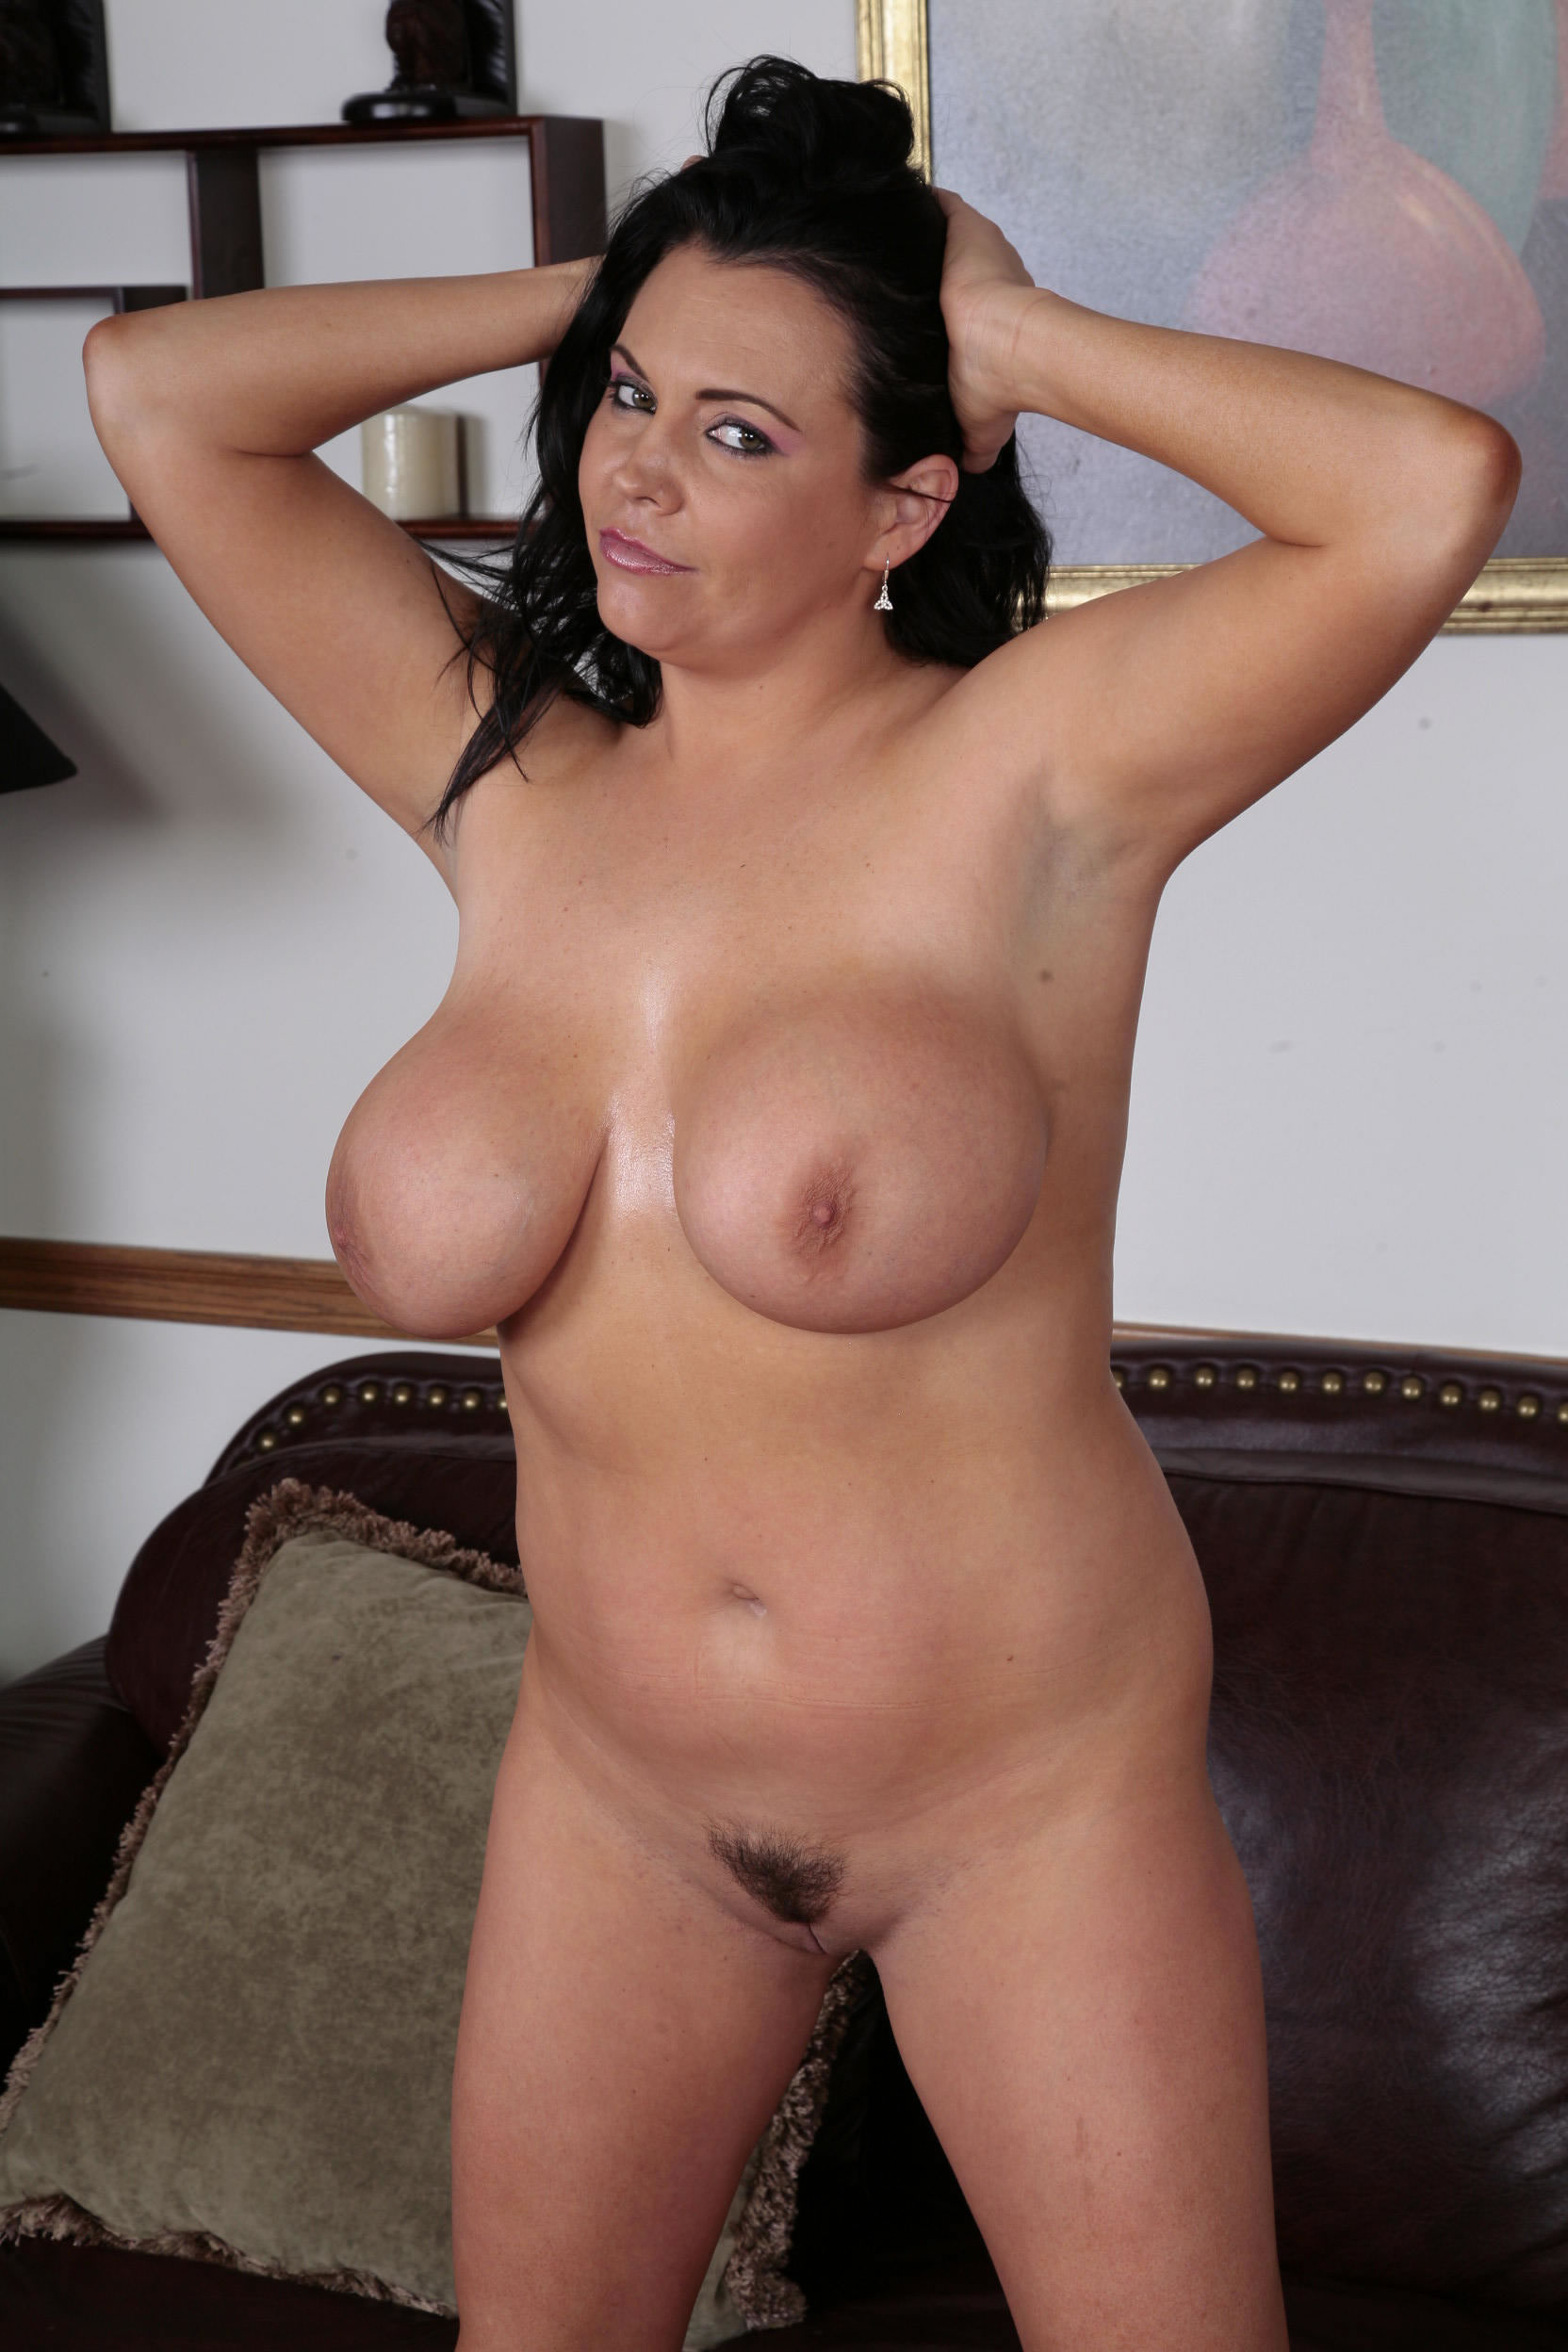 Alone! busty angelica sin for